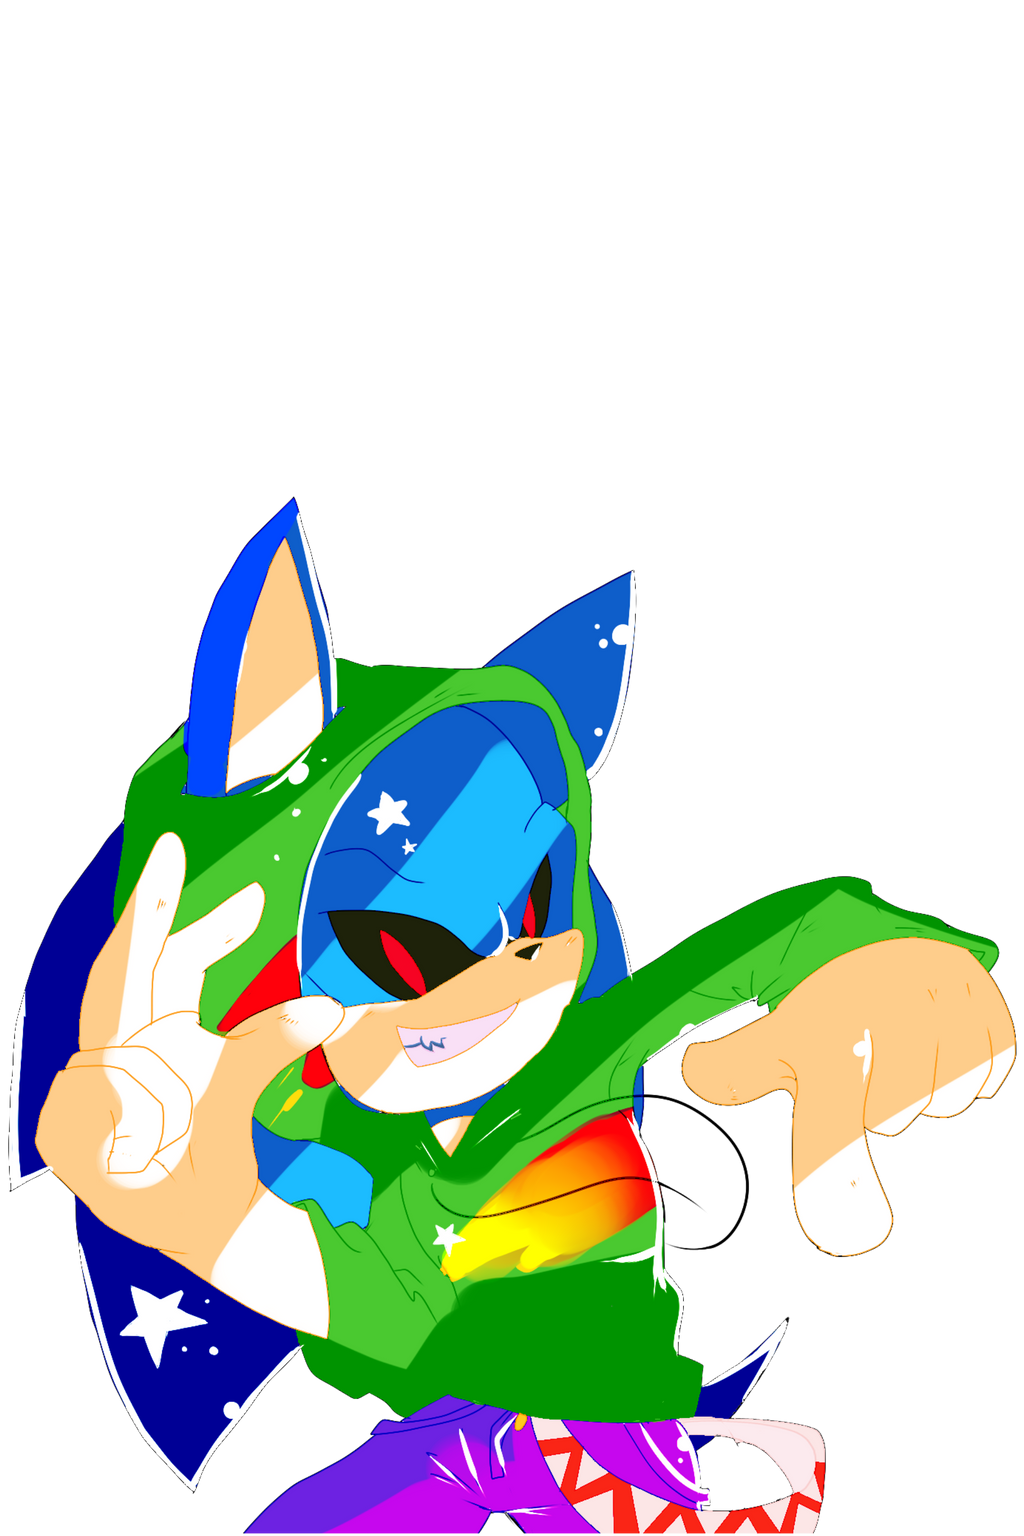 SonadowRoxmyWorld's Profile Picture